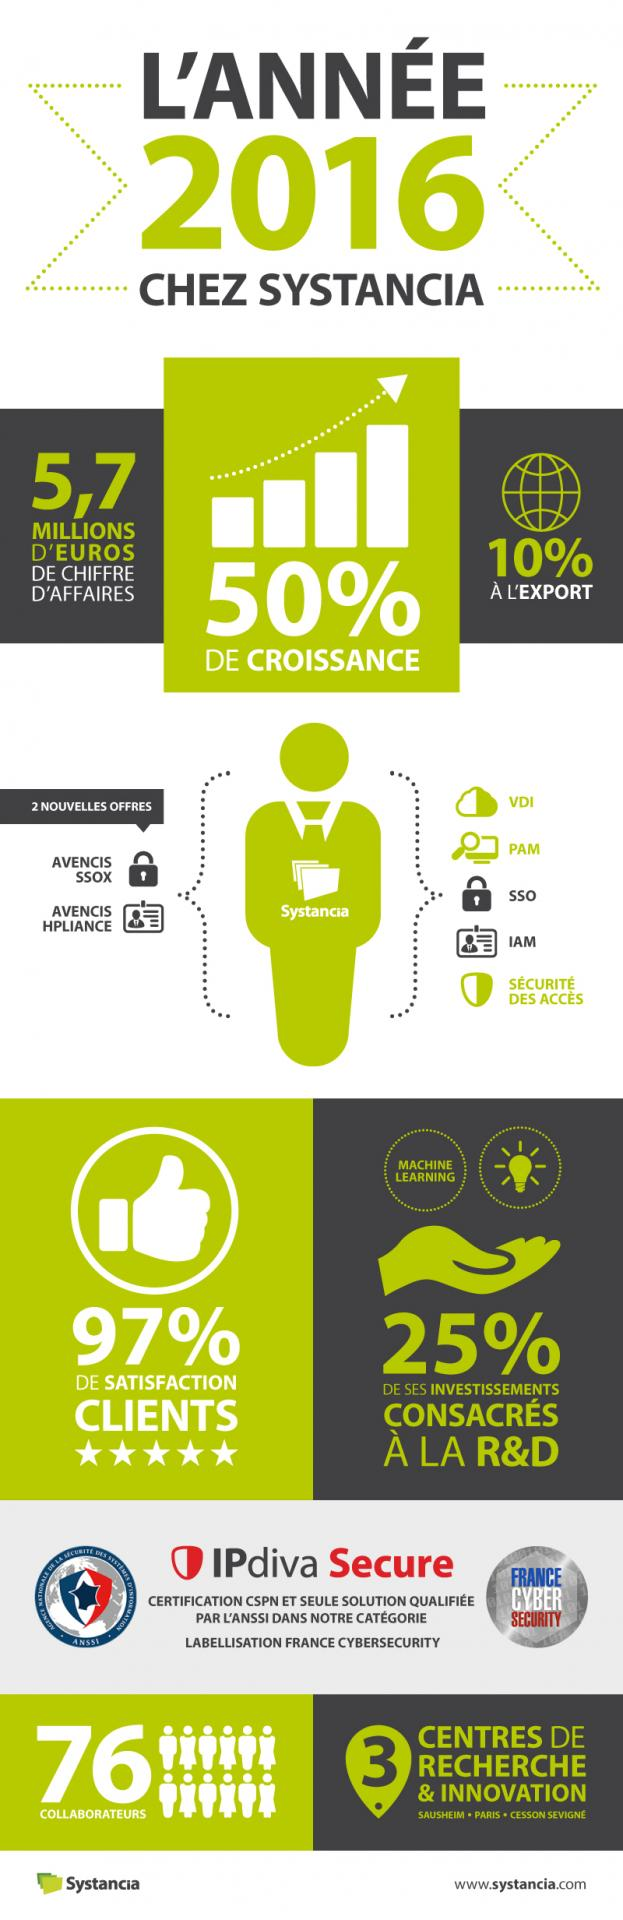 Infographie systancia chiffres 2016